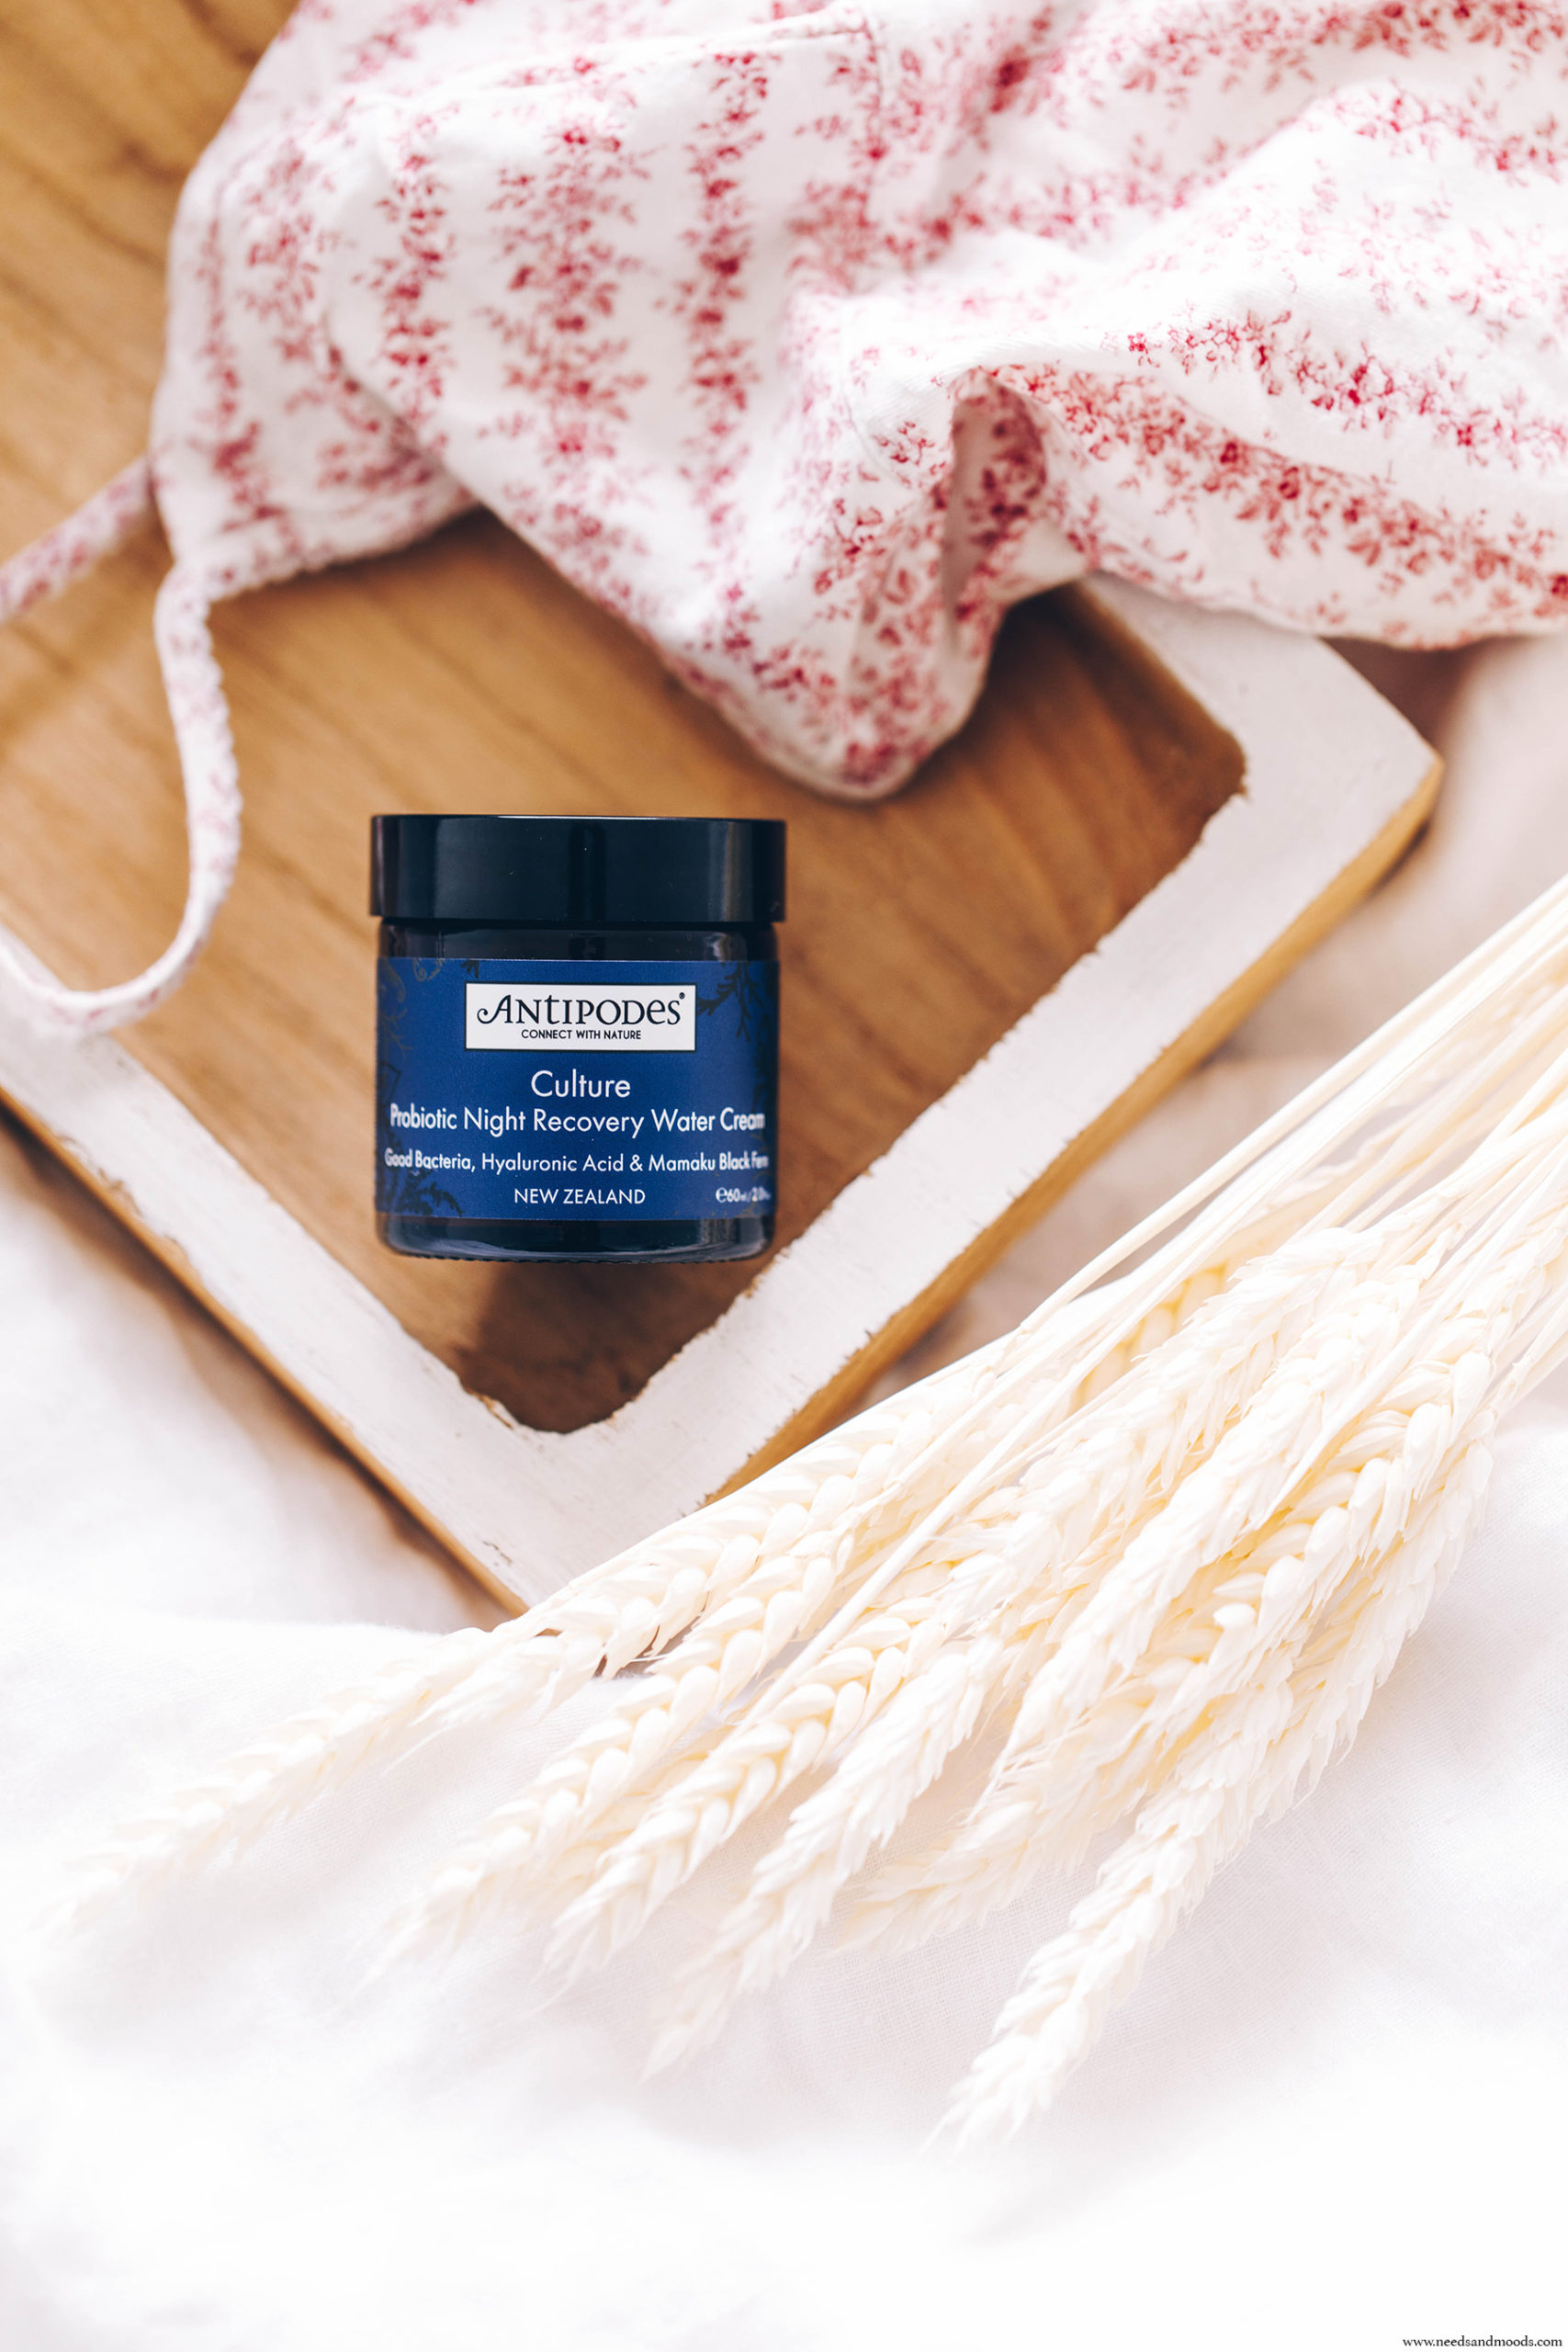 antipodes culture probiotic night recovery water cream avis